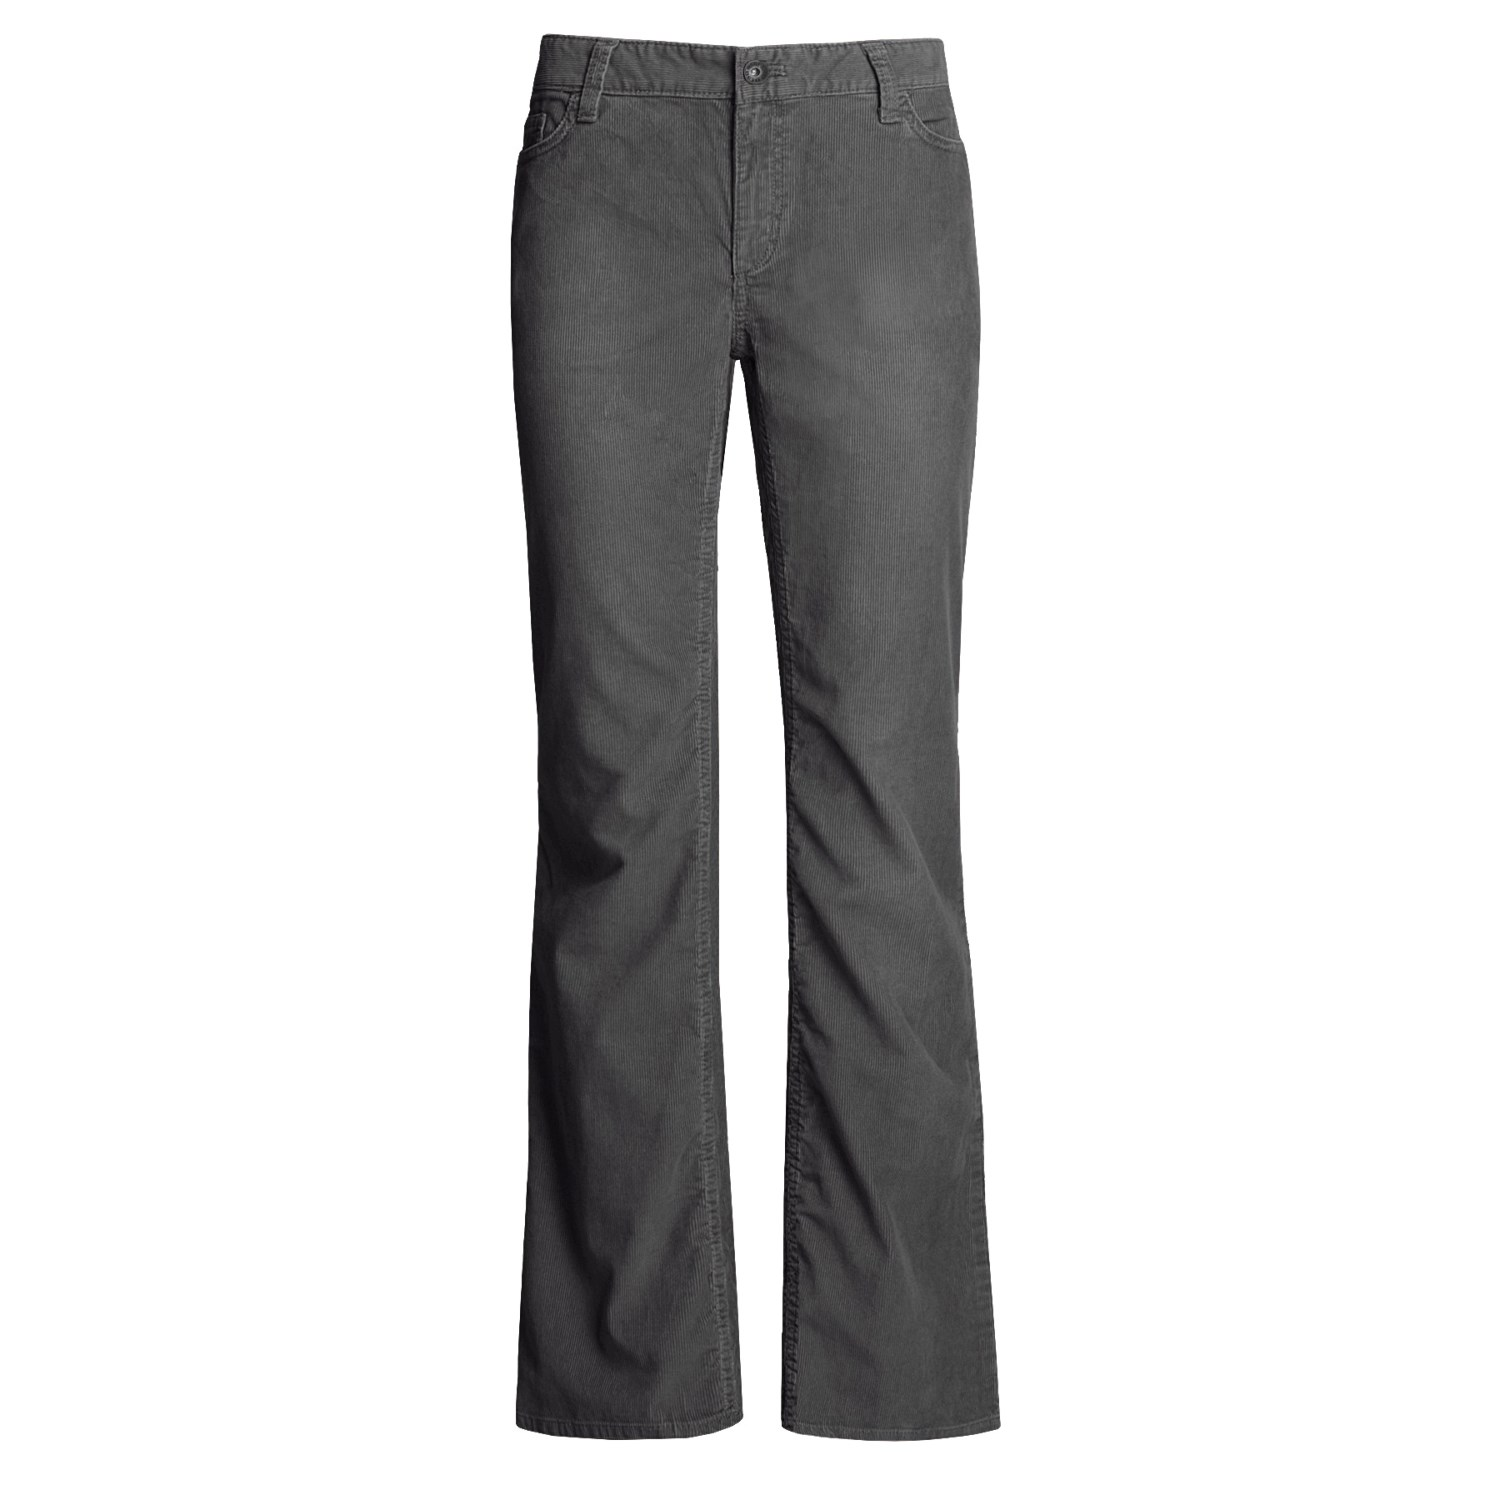 Nov 10, · Oh so soft, with basic yet bold colors, these wardrobe essential girls' corduroy pants have five-pocket styling, great stretch, and a flattering silhouette. Full-length slim legs. Lower rise at front, but with good coverage at back/5(2).